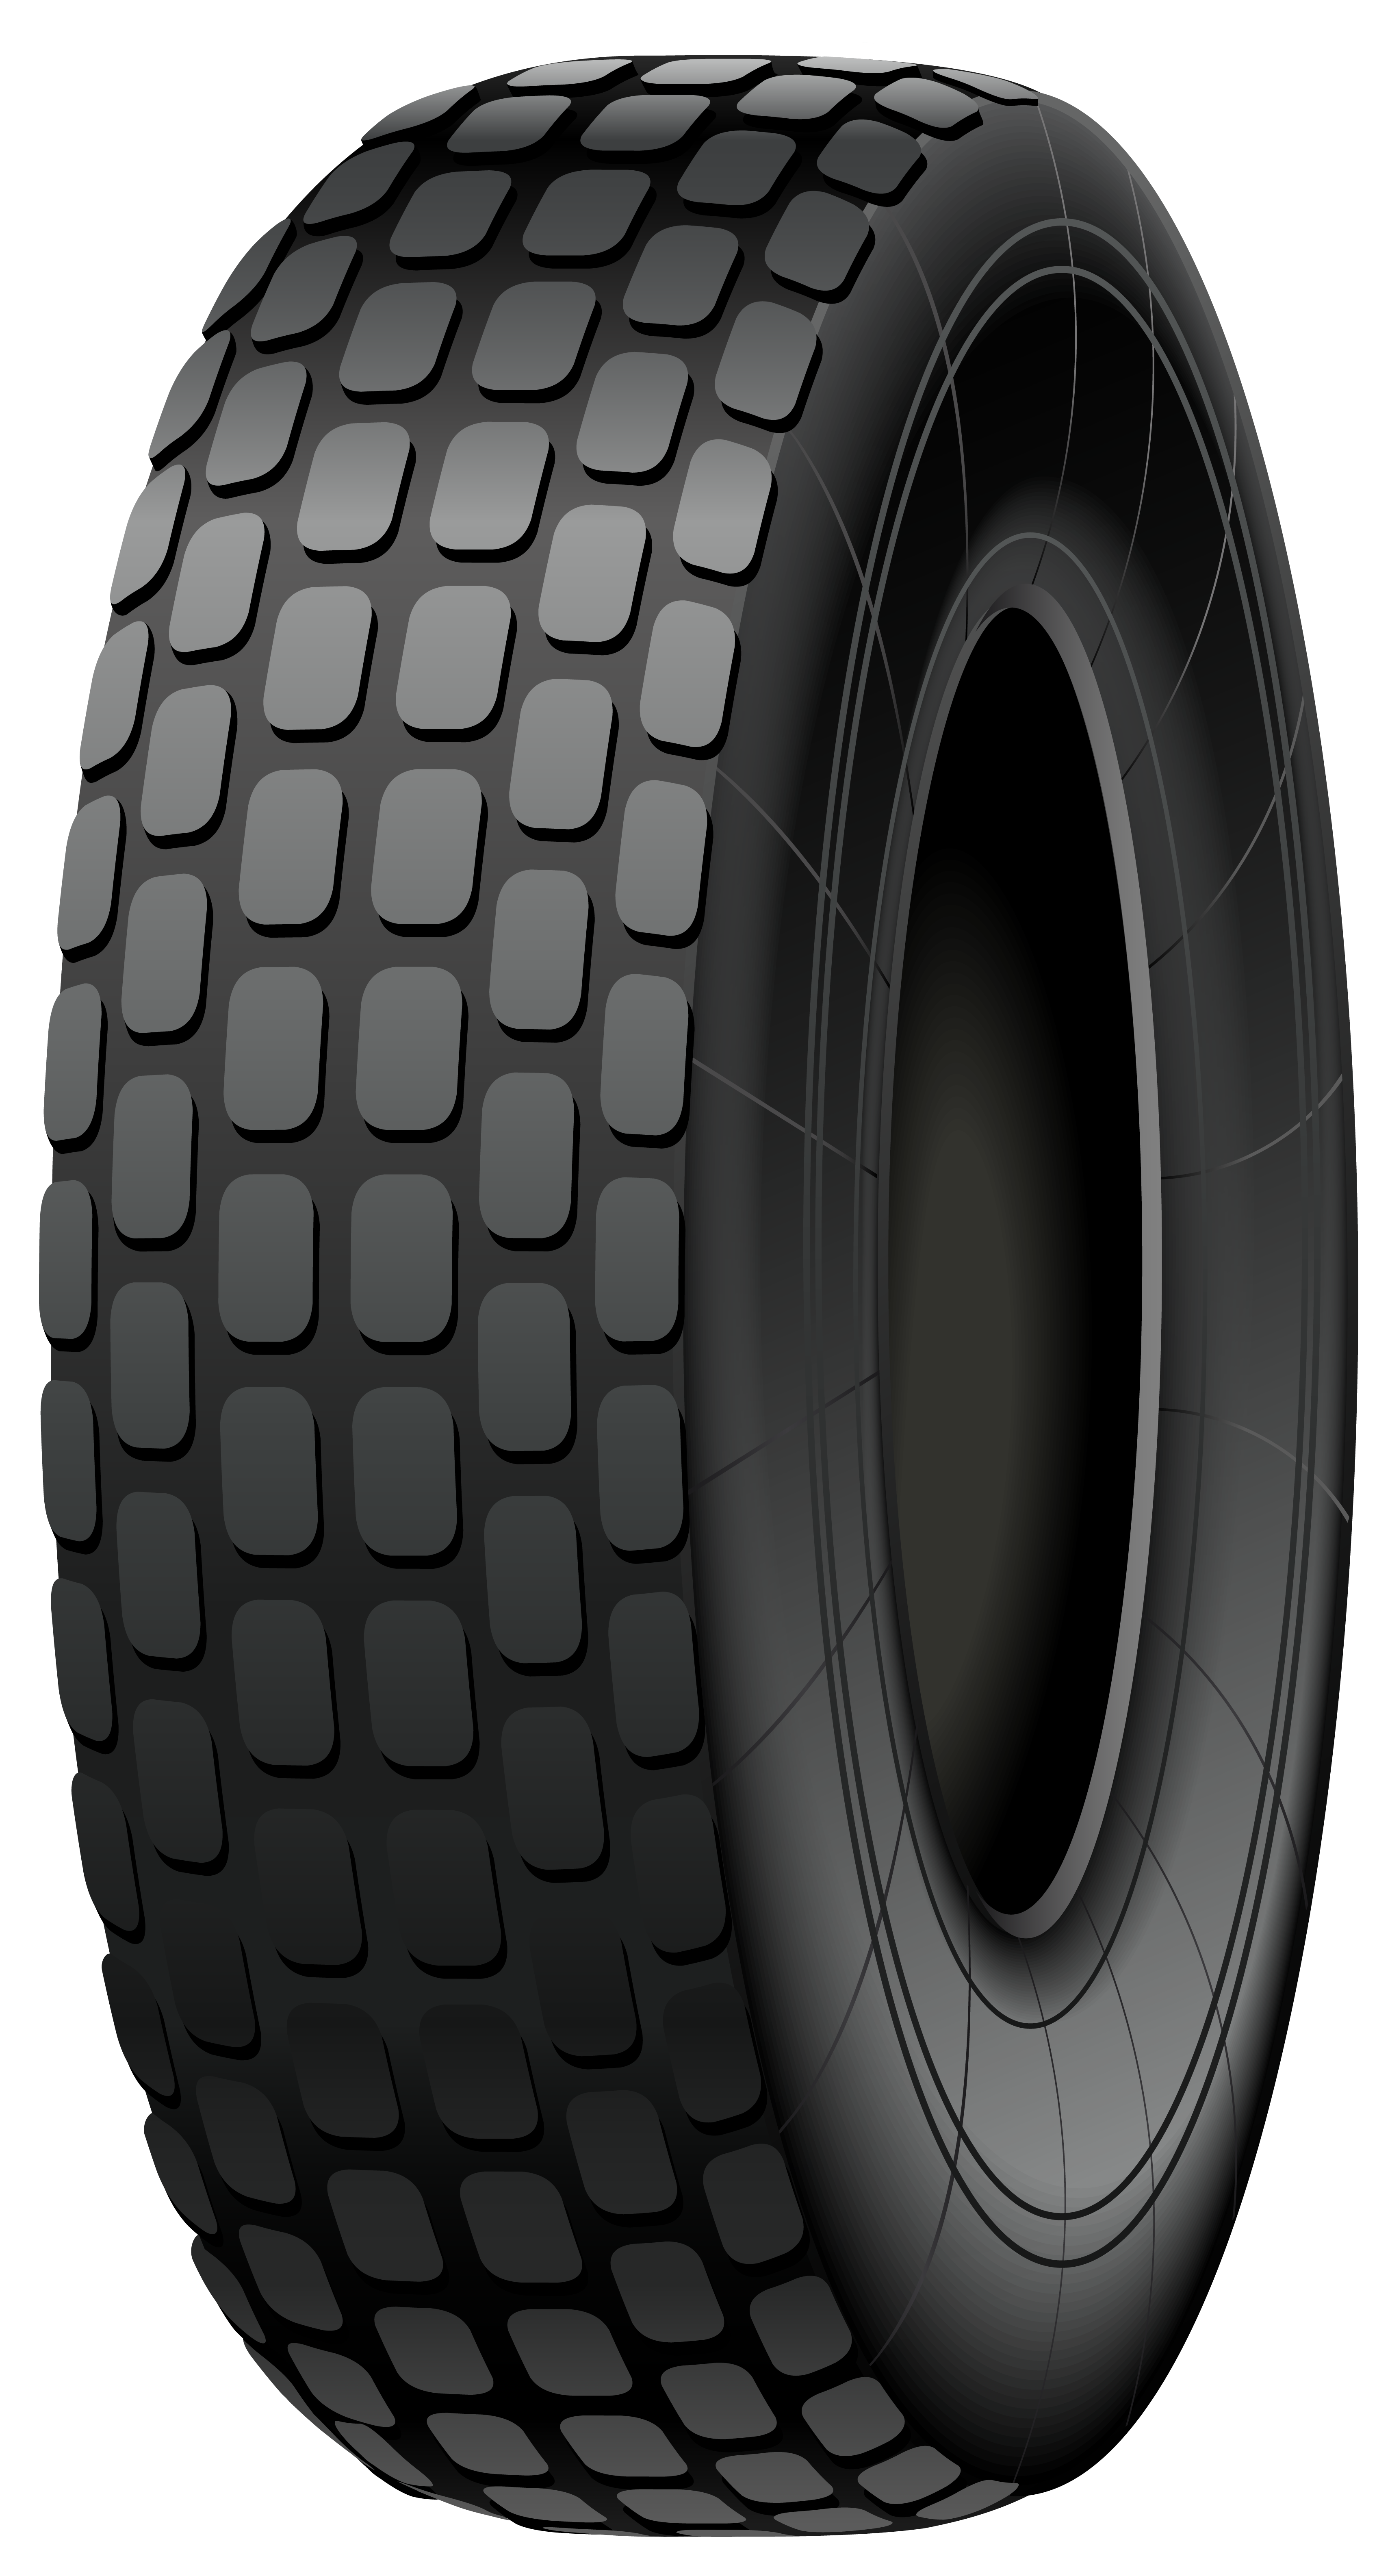 clip royalty free stock Tire clipart. Black png clip art